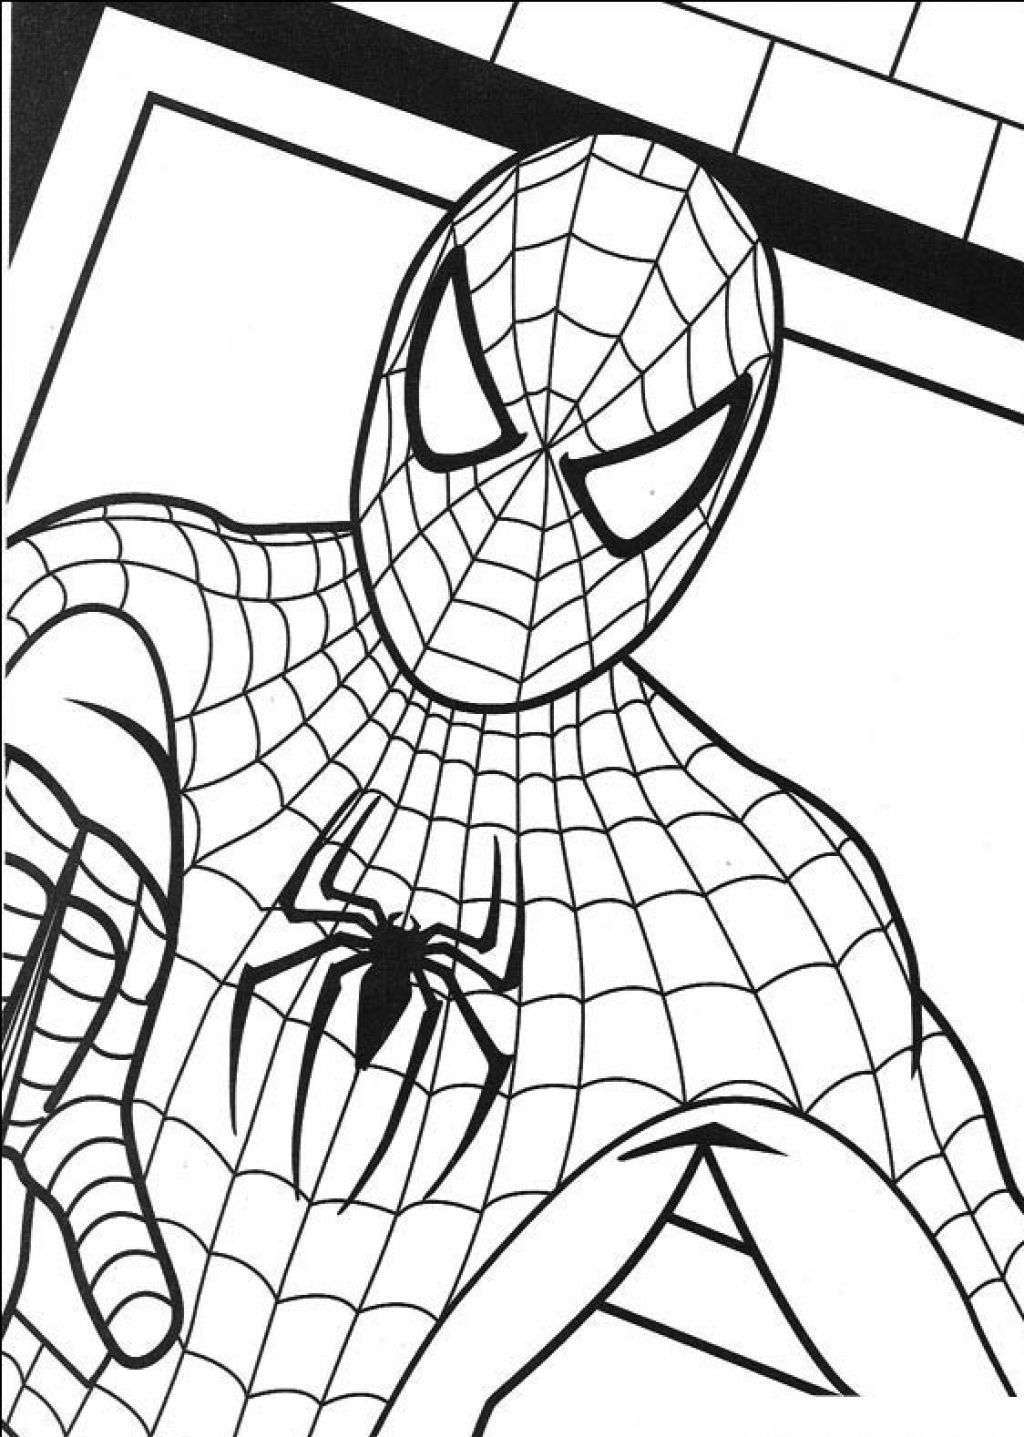 Coloring Pages For Kids Spiderman Free Printable Spiderman Coloring Pages For Kids Avengers Coloring Pages Superhero Coloring Avengers Coloring